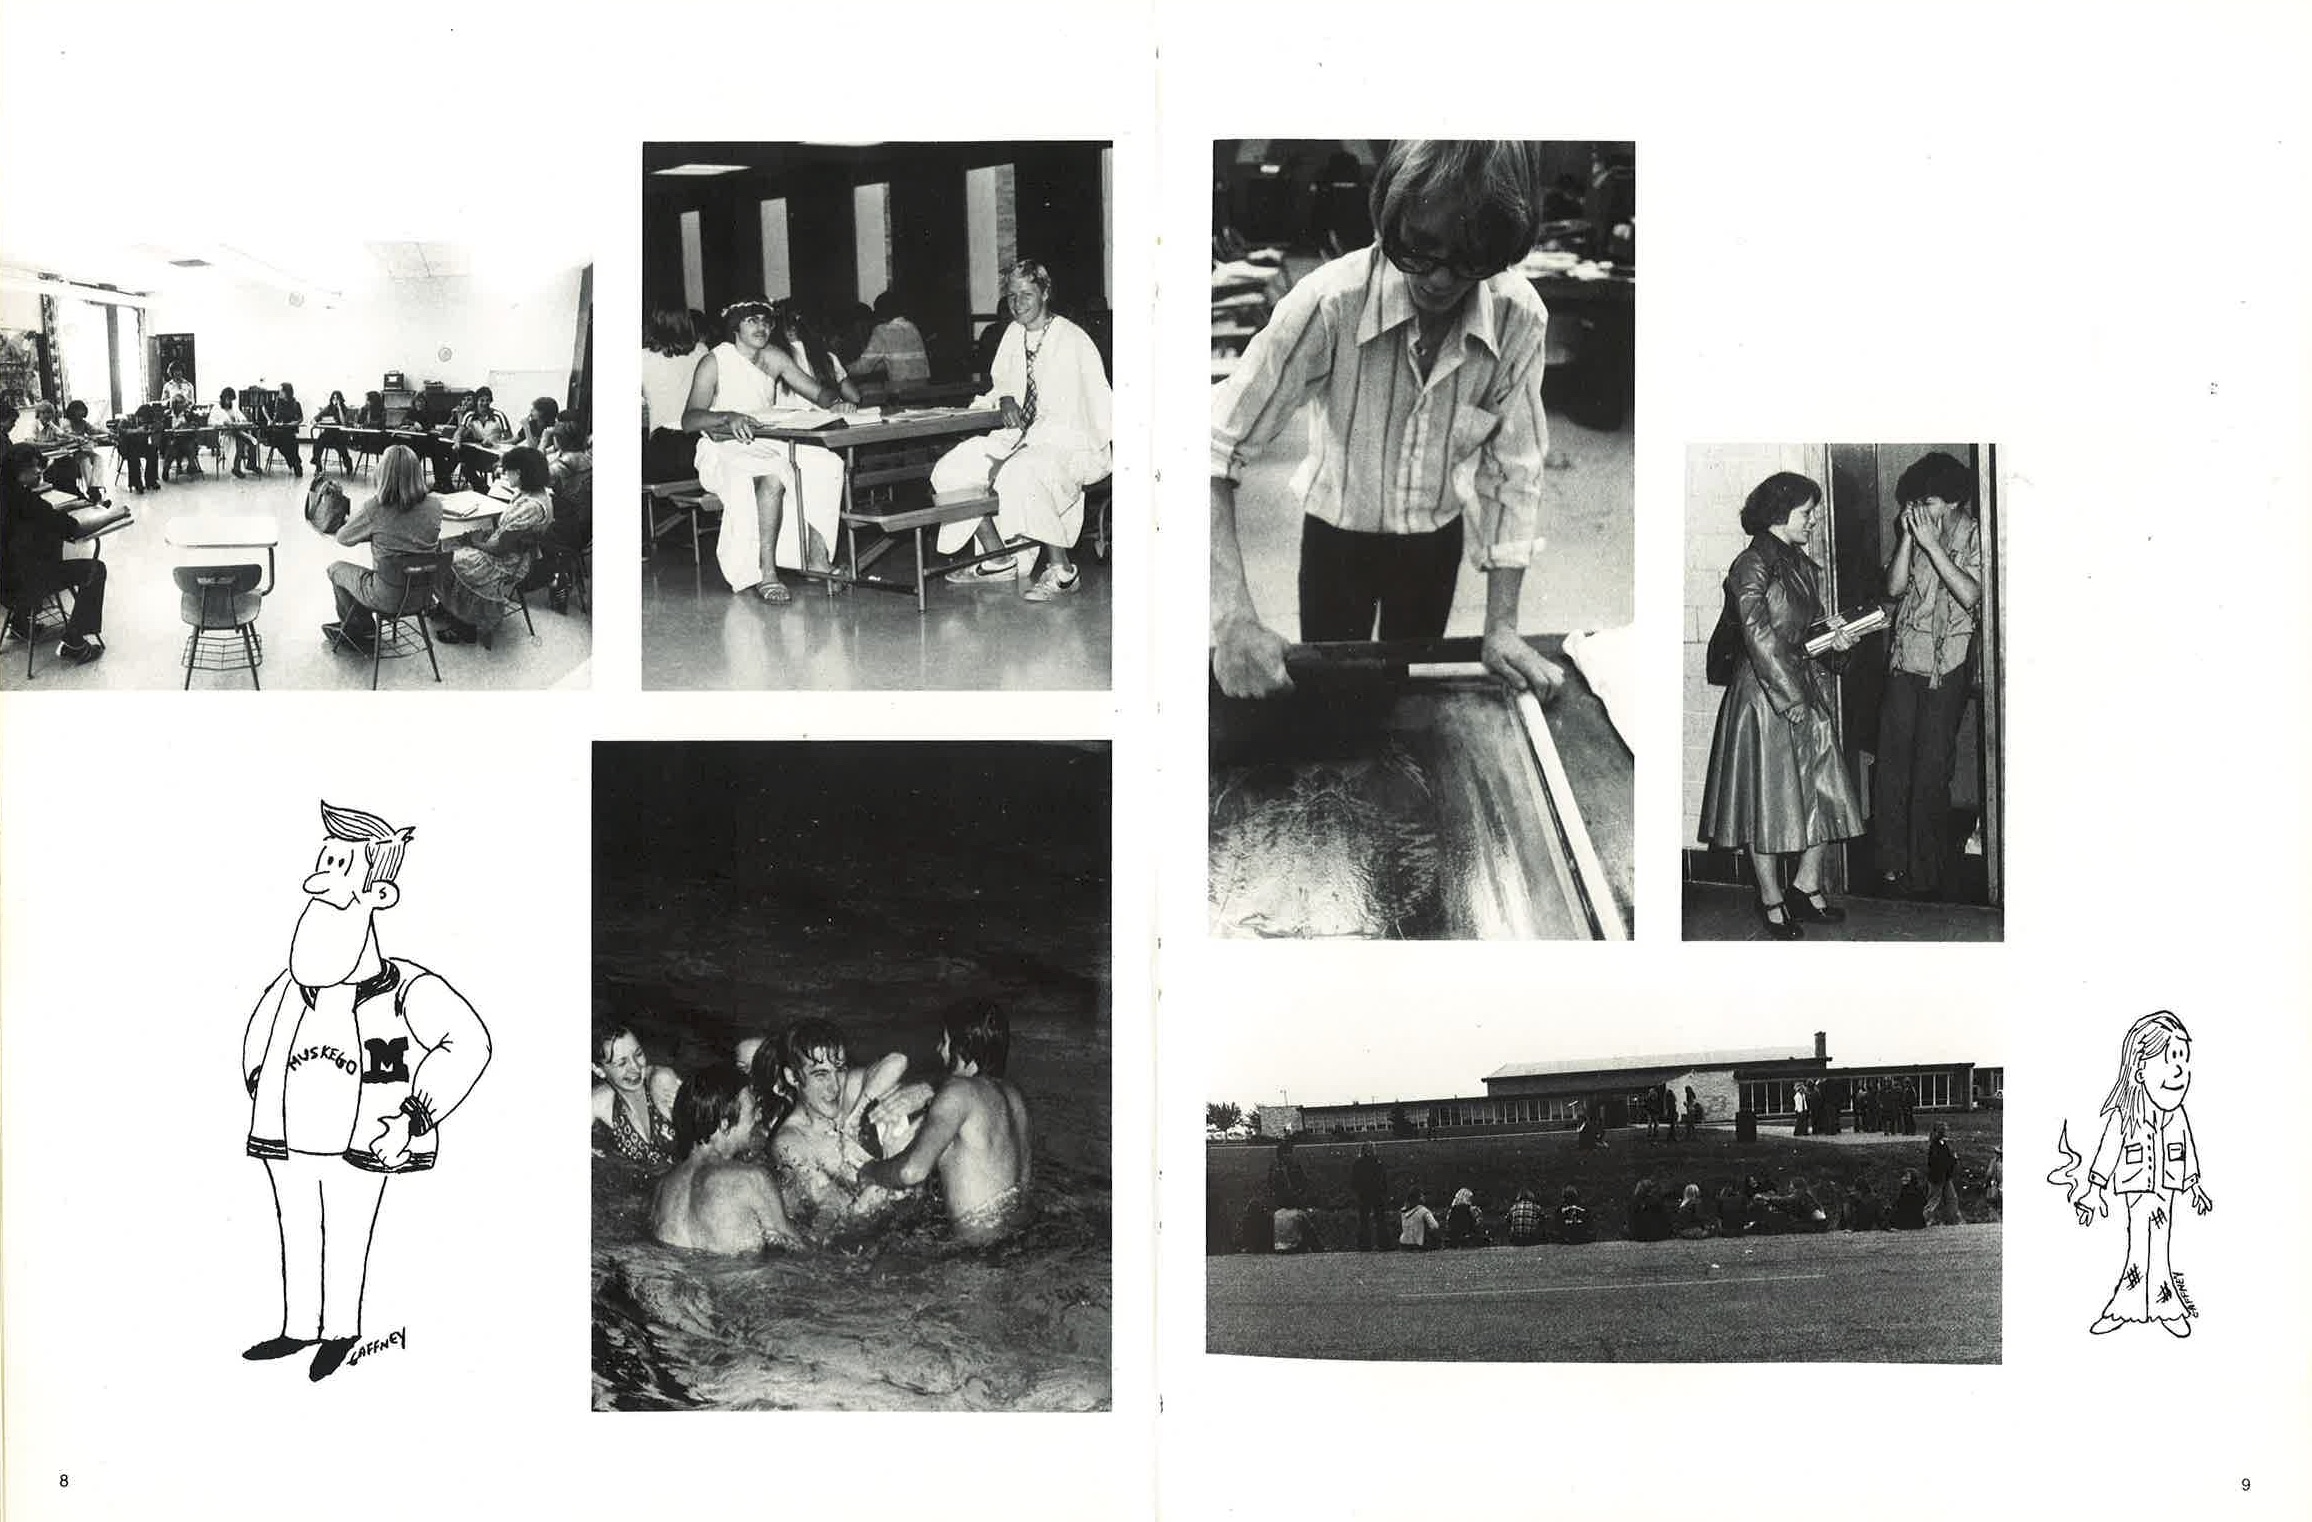 1979_Yearbook_8.jpg